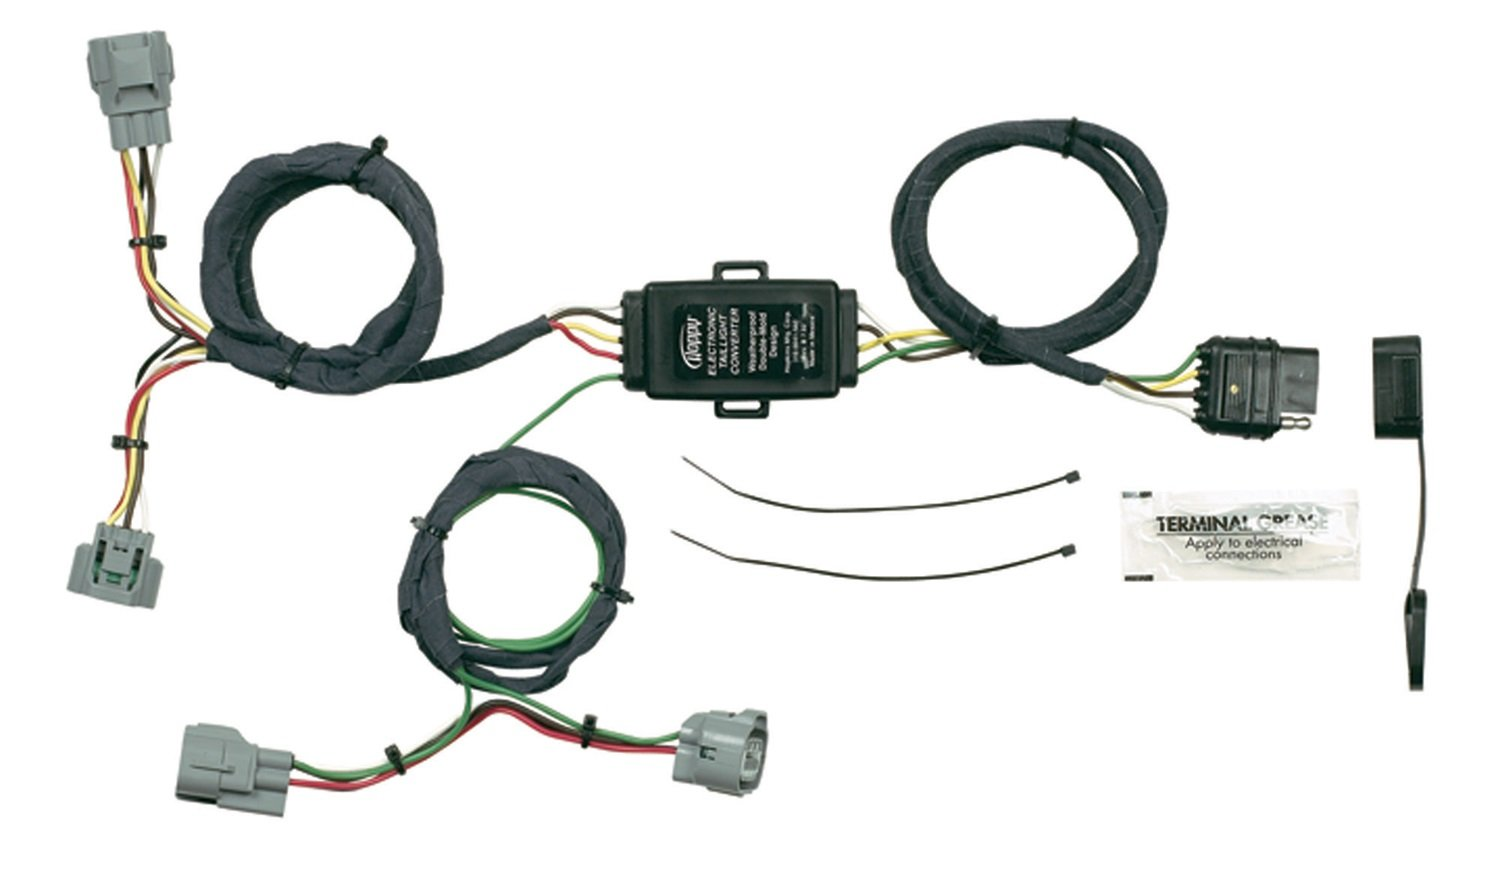 Hopkins 43355 Plug In Simple Vehicle Wiring Kit Automotive 2006 Tacoma Trailer Diagram